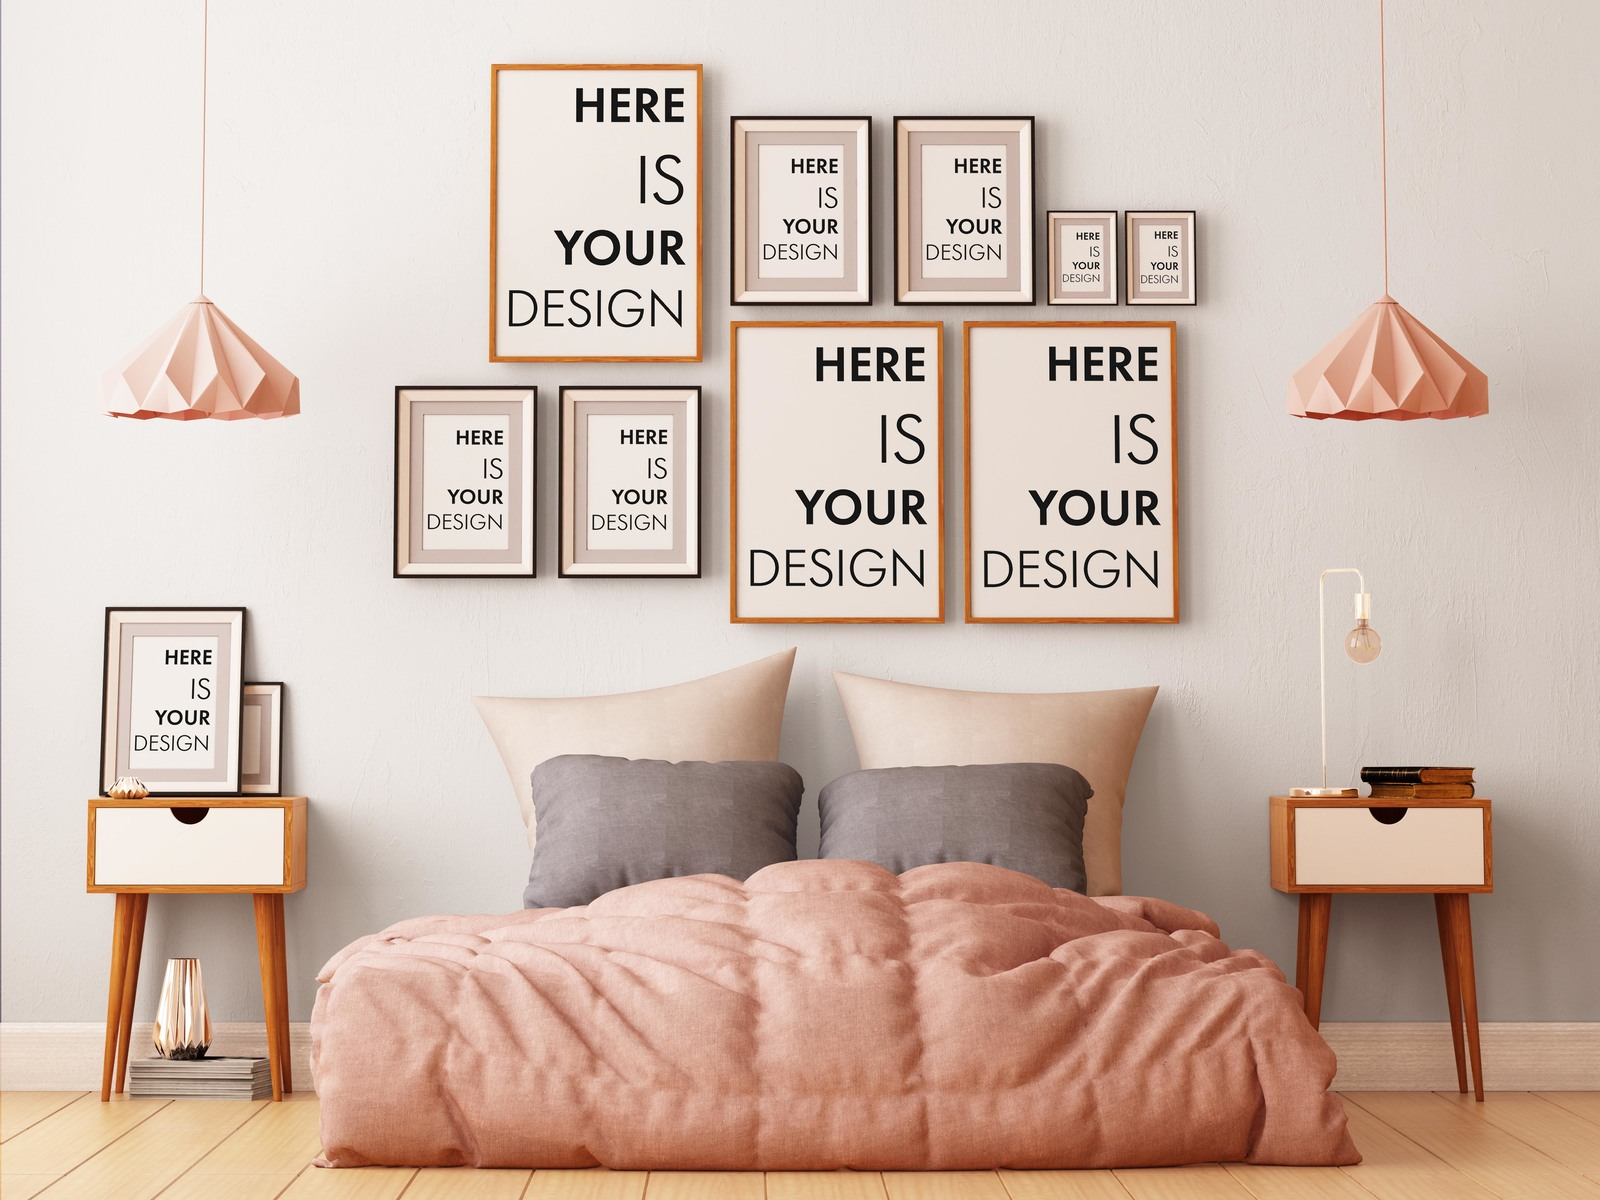 8 group mock-ups of posters in the bedroom